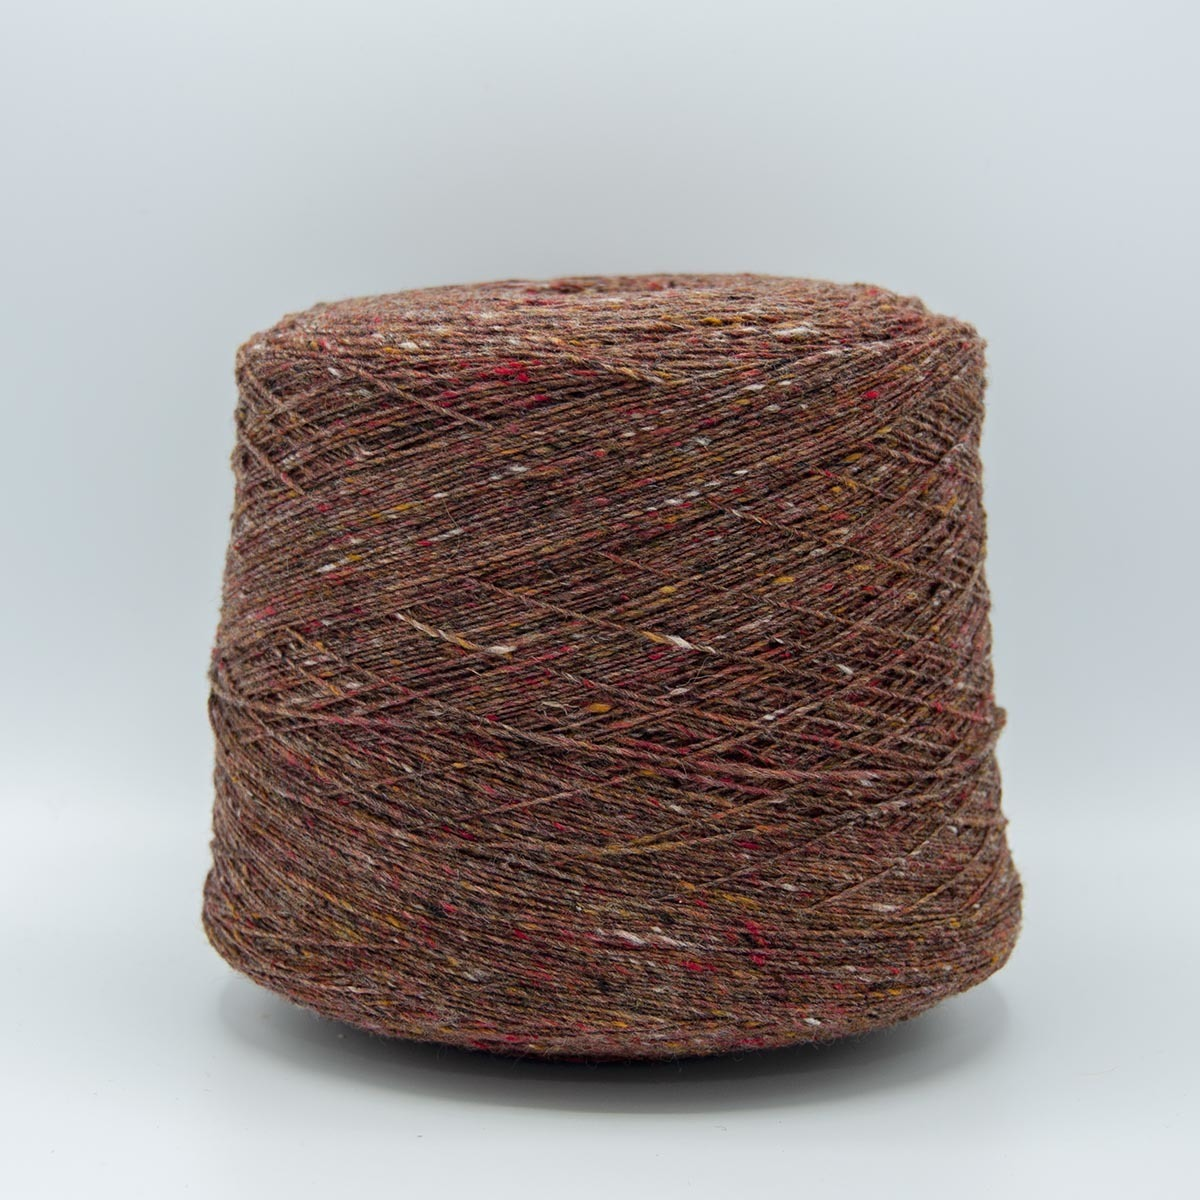 Knoll Yarns Soft Donegal (одинарный твид) - 5585